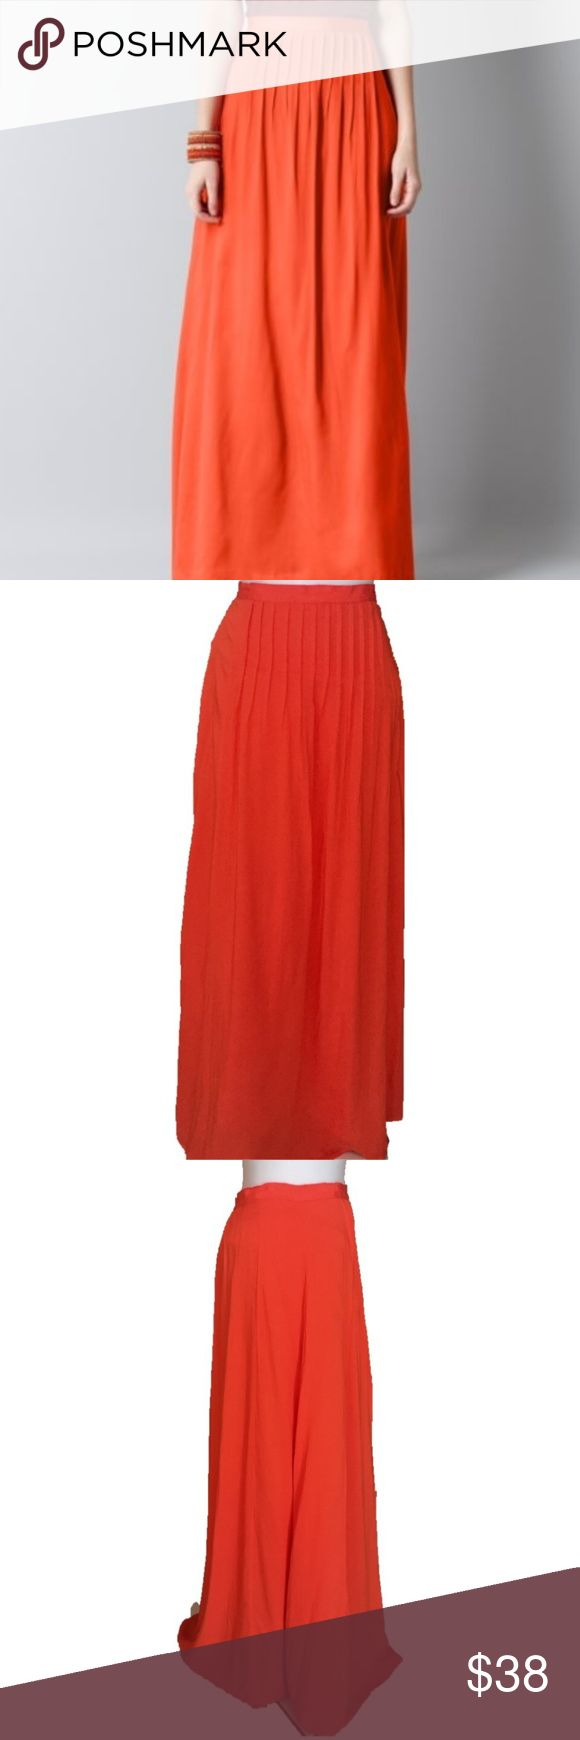 """NWT LOFT Orange Maxi Rayon Skirt Size 6 Orange rayon maxi skirt by LOFT is NWT. Pretty pintucks, 1"""" grosgrain ribbon at waist. Side zip. Cotton lining. Size 6, measurements are flat and approximate: Waist 15"""" Length 39"""" LOFT Skirts"""